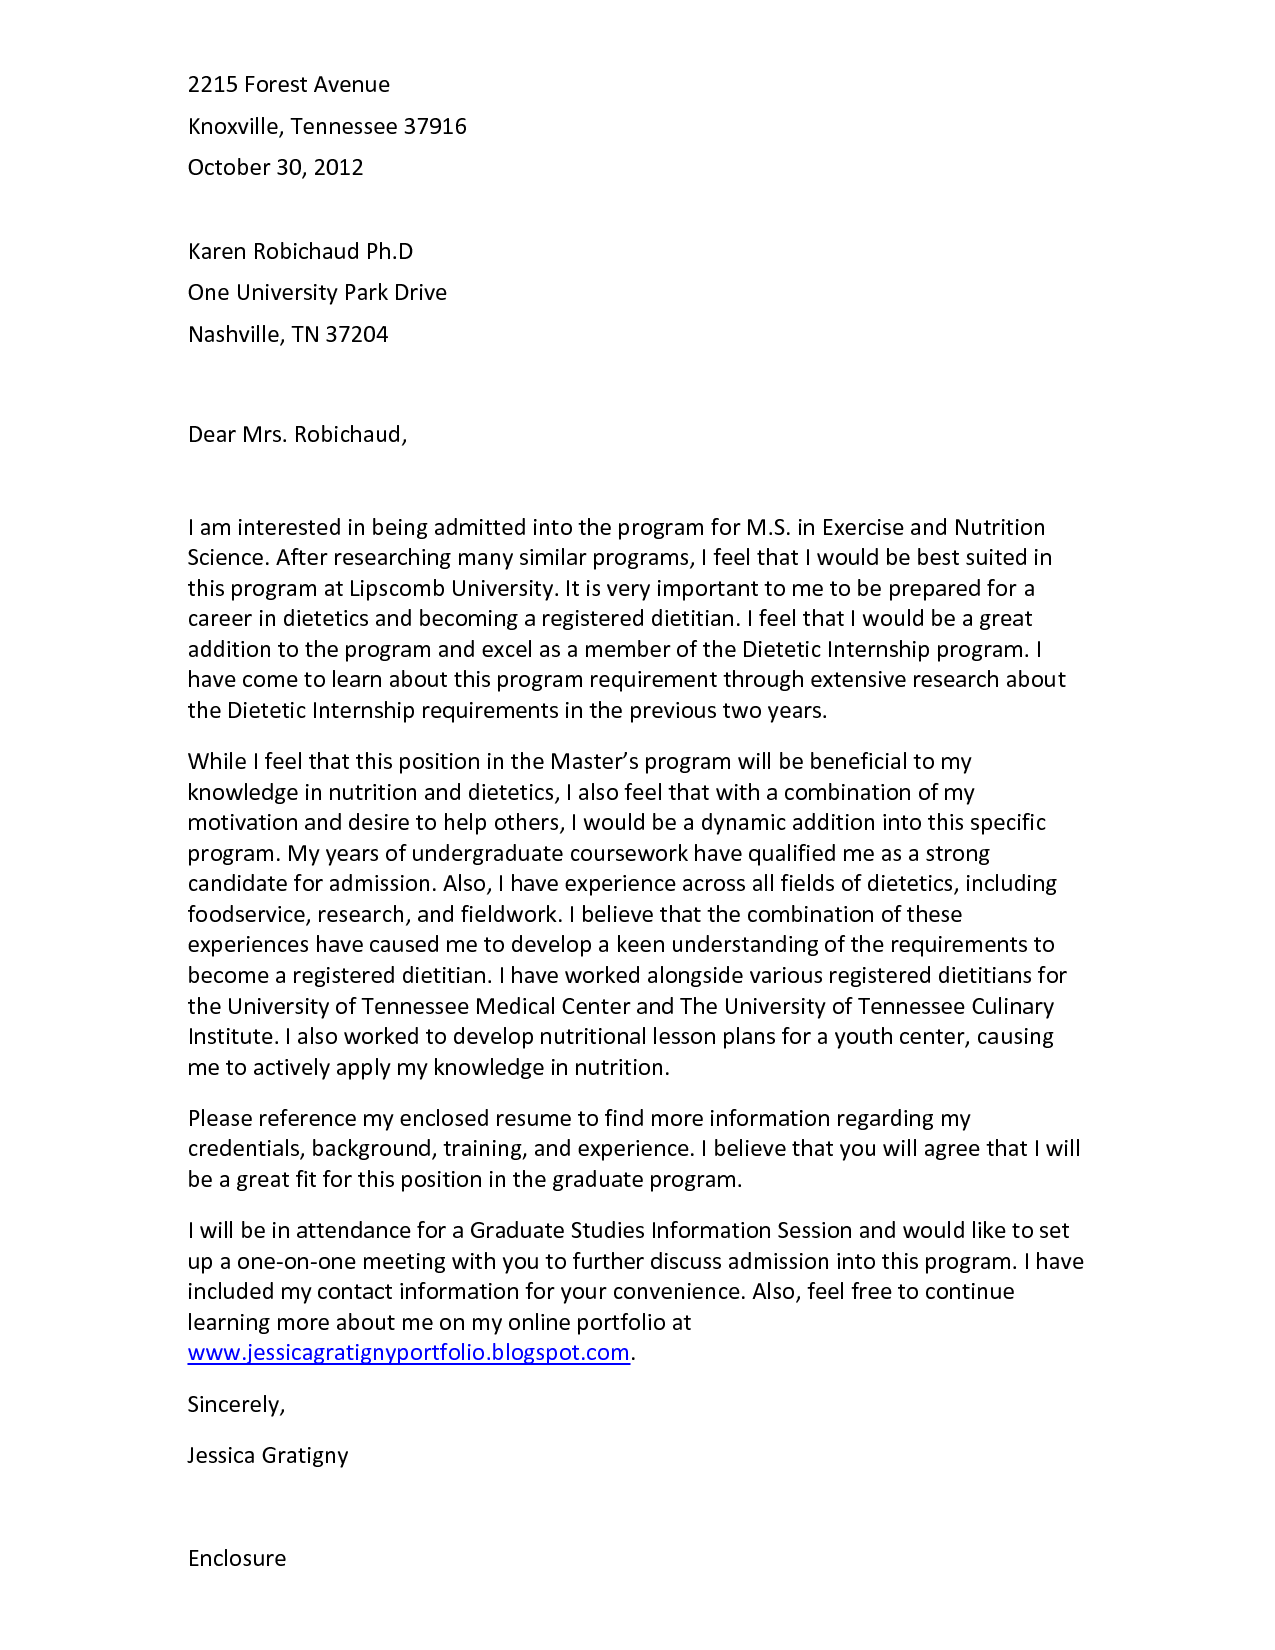 motivation letter for university admission sample professional motivation letter for university admission sample motivation letter sample for university admission to law sample scholarship